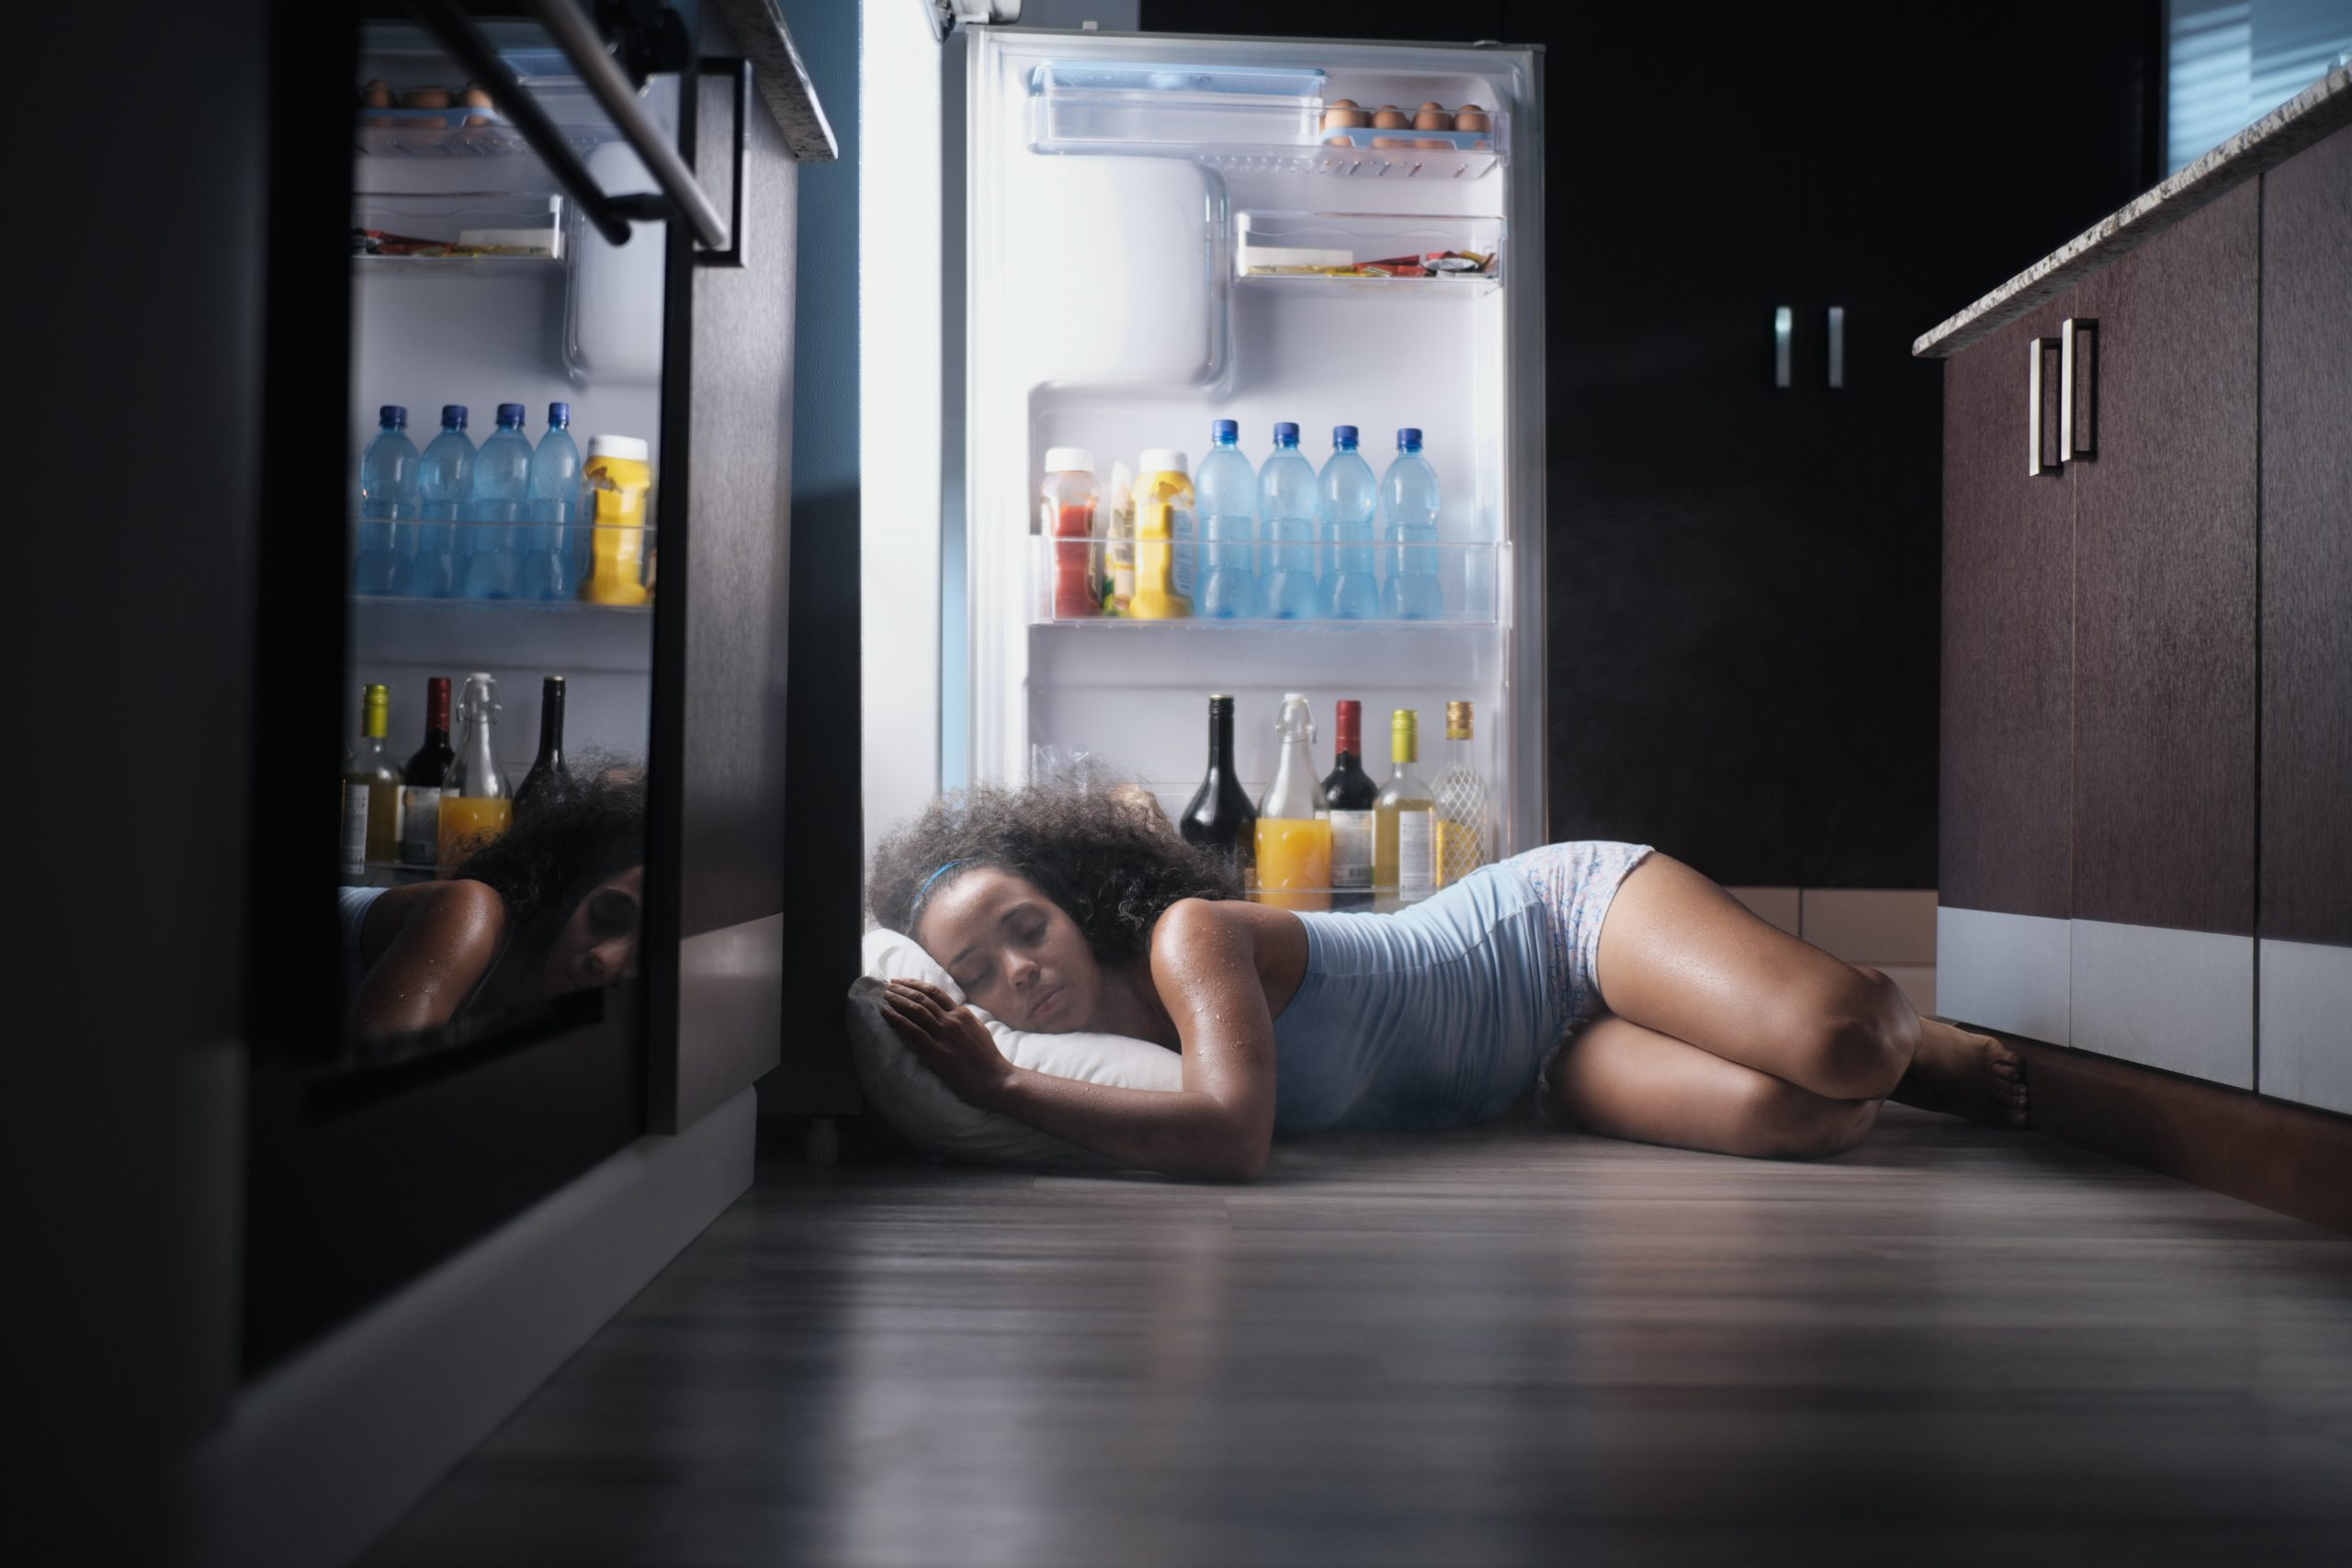 Hot sleeper in fridge